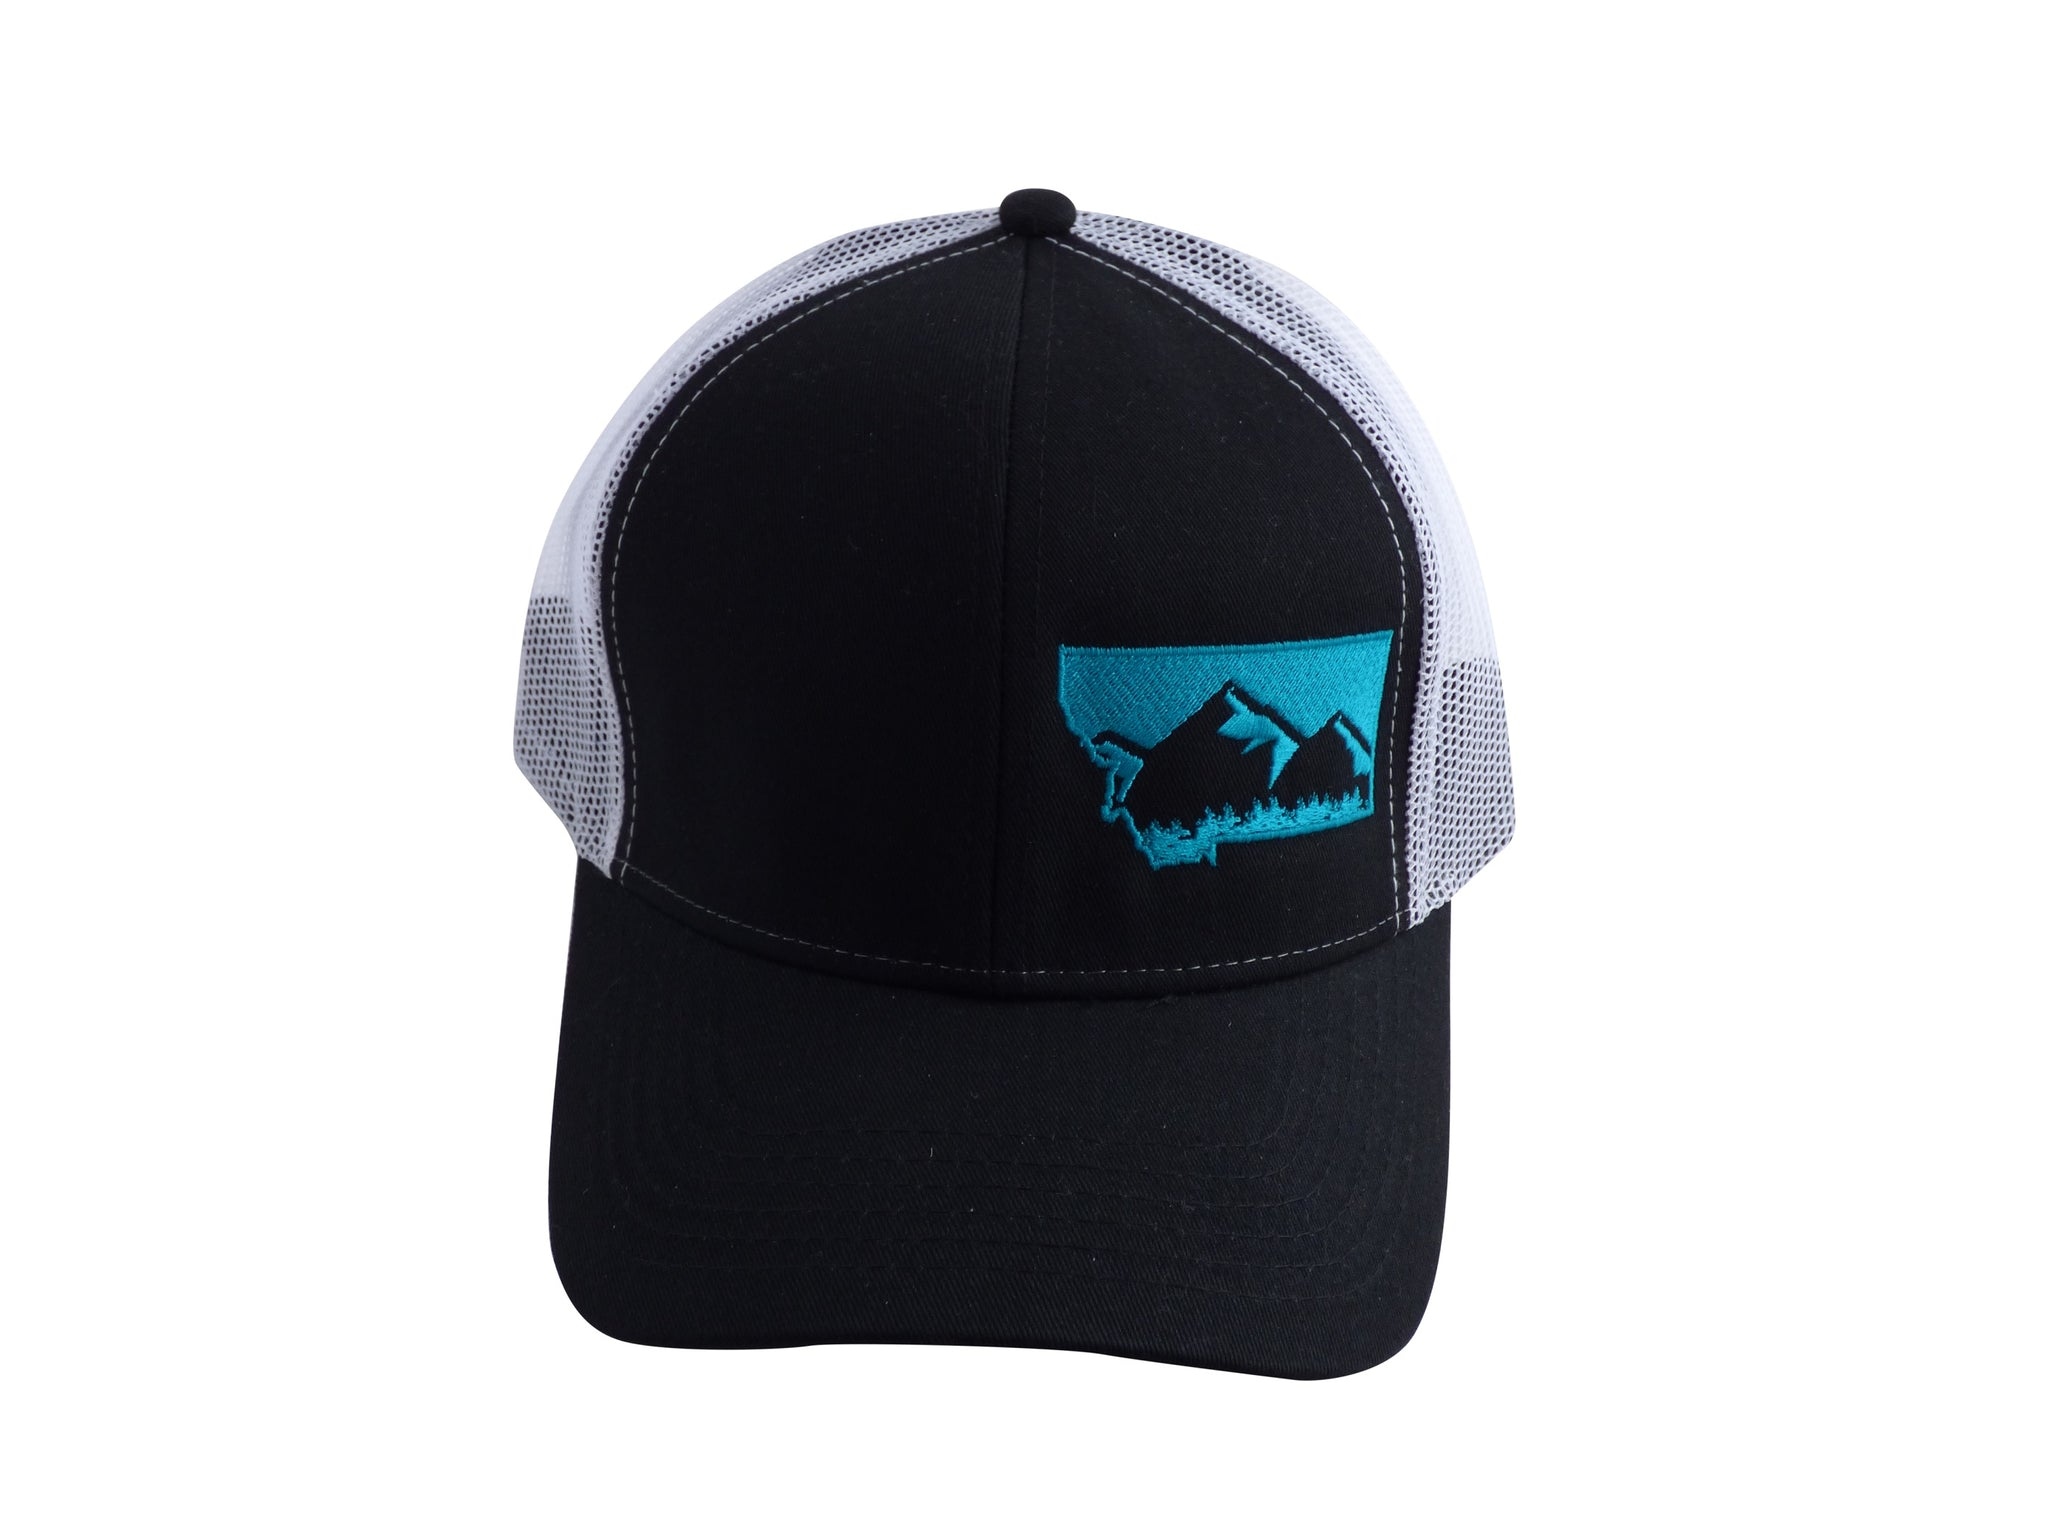 Black with Teal MT Hat